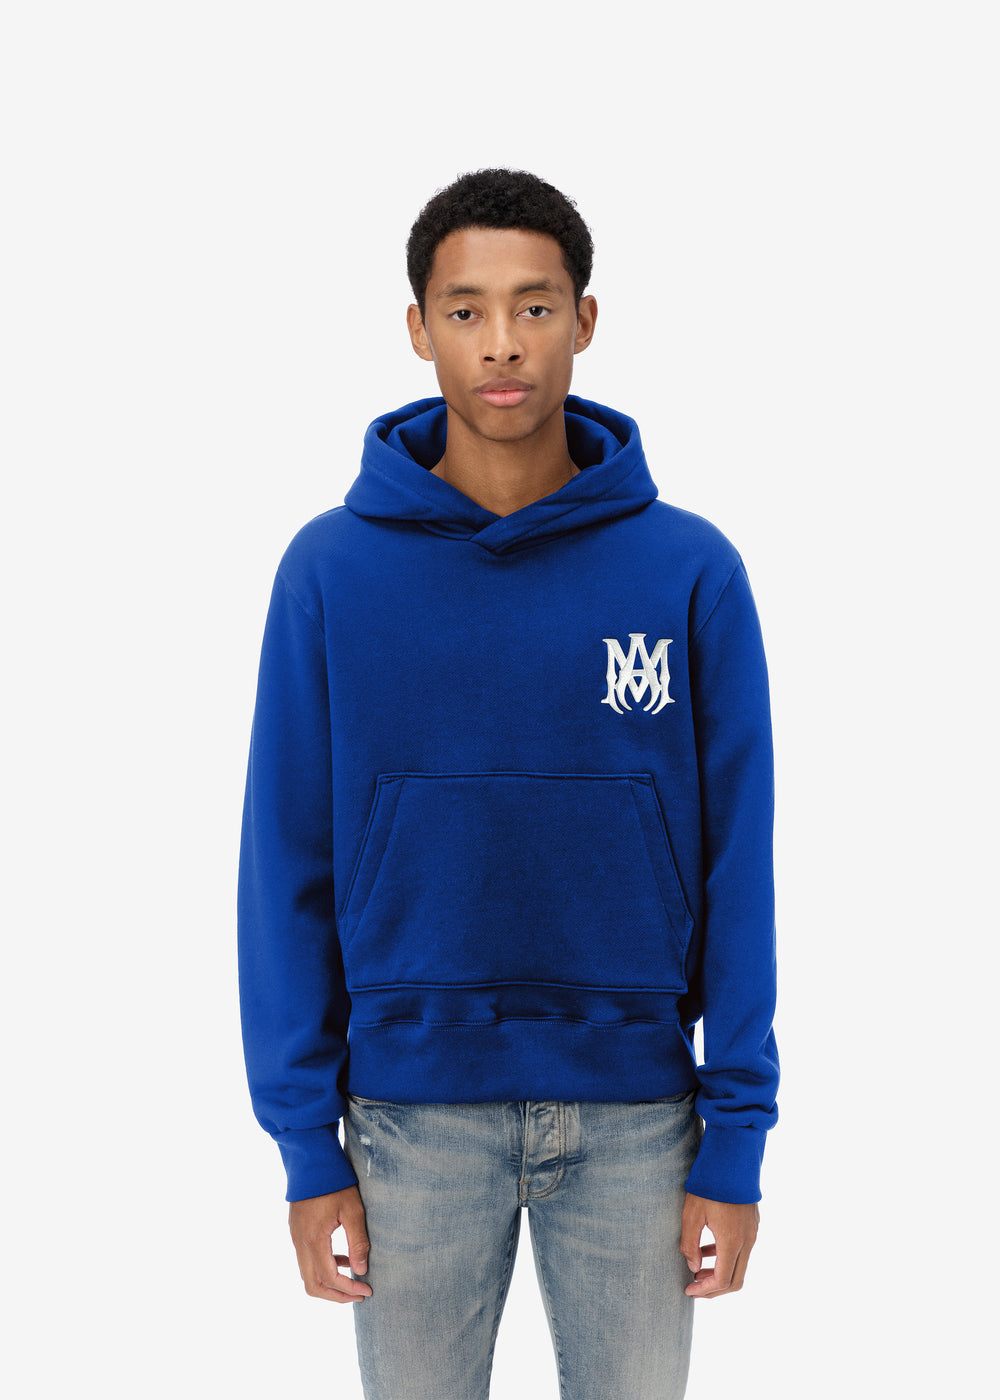 M.A. FITTED HOODIE - VARSITY BLUE